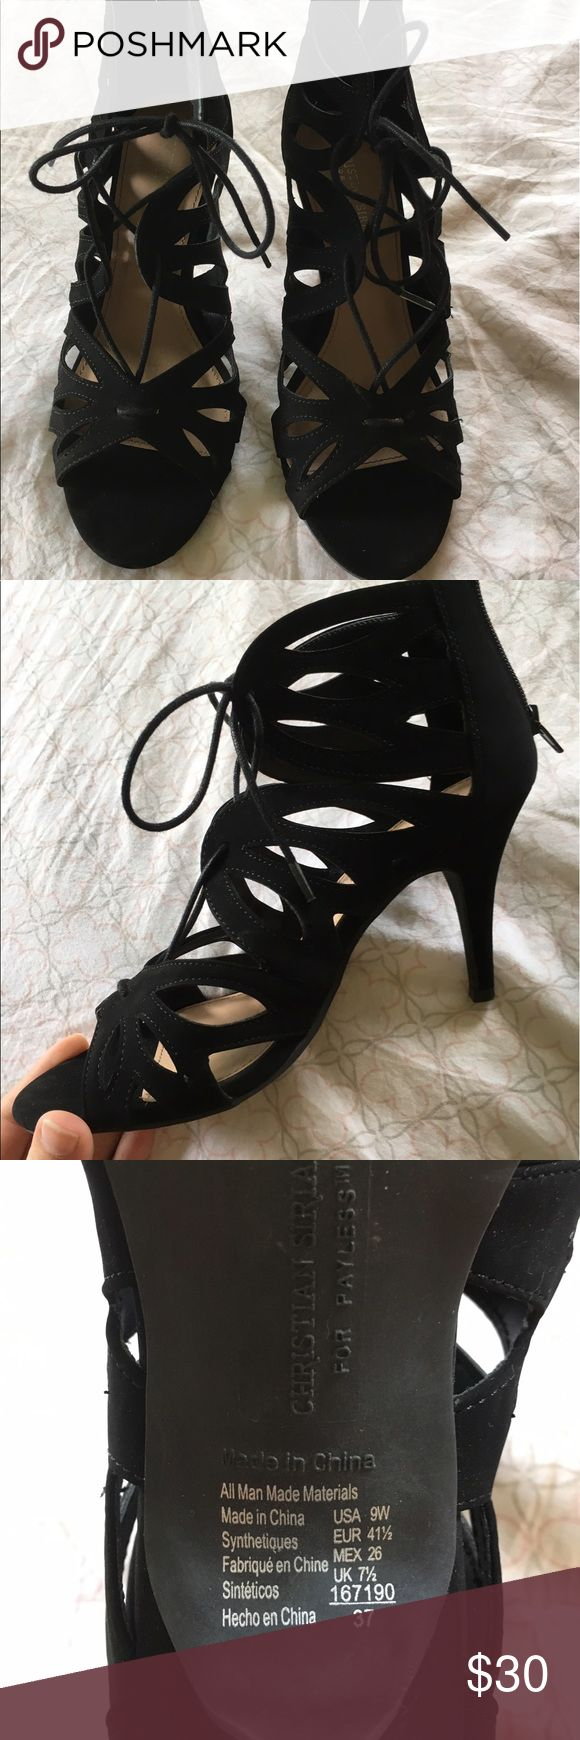 Christian Siriano black heels Super cute black heels worn once for prom, in amazing condition, just like new. kind of suede material size 9 women's Christian Siriano Shoes Heels